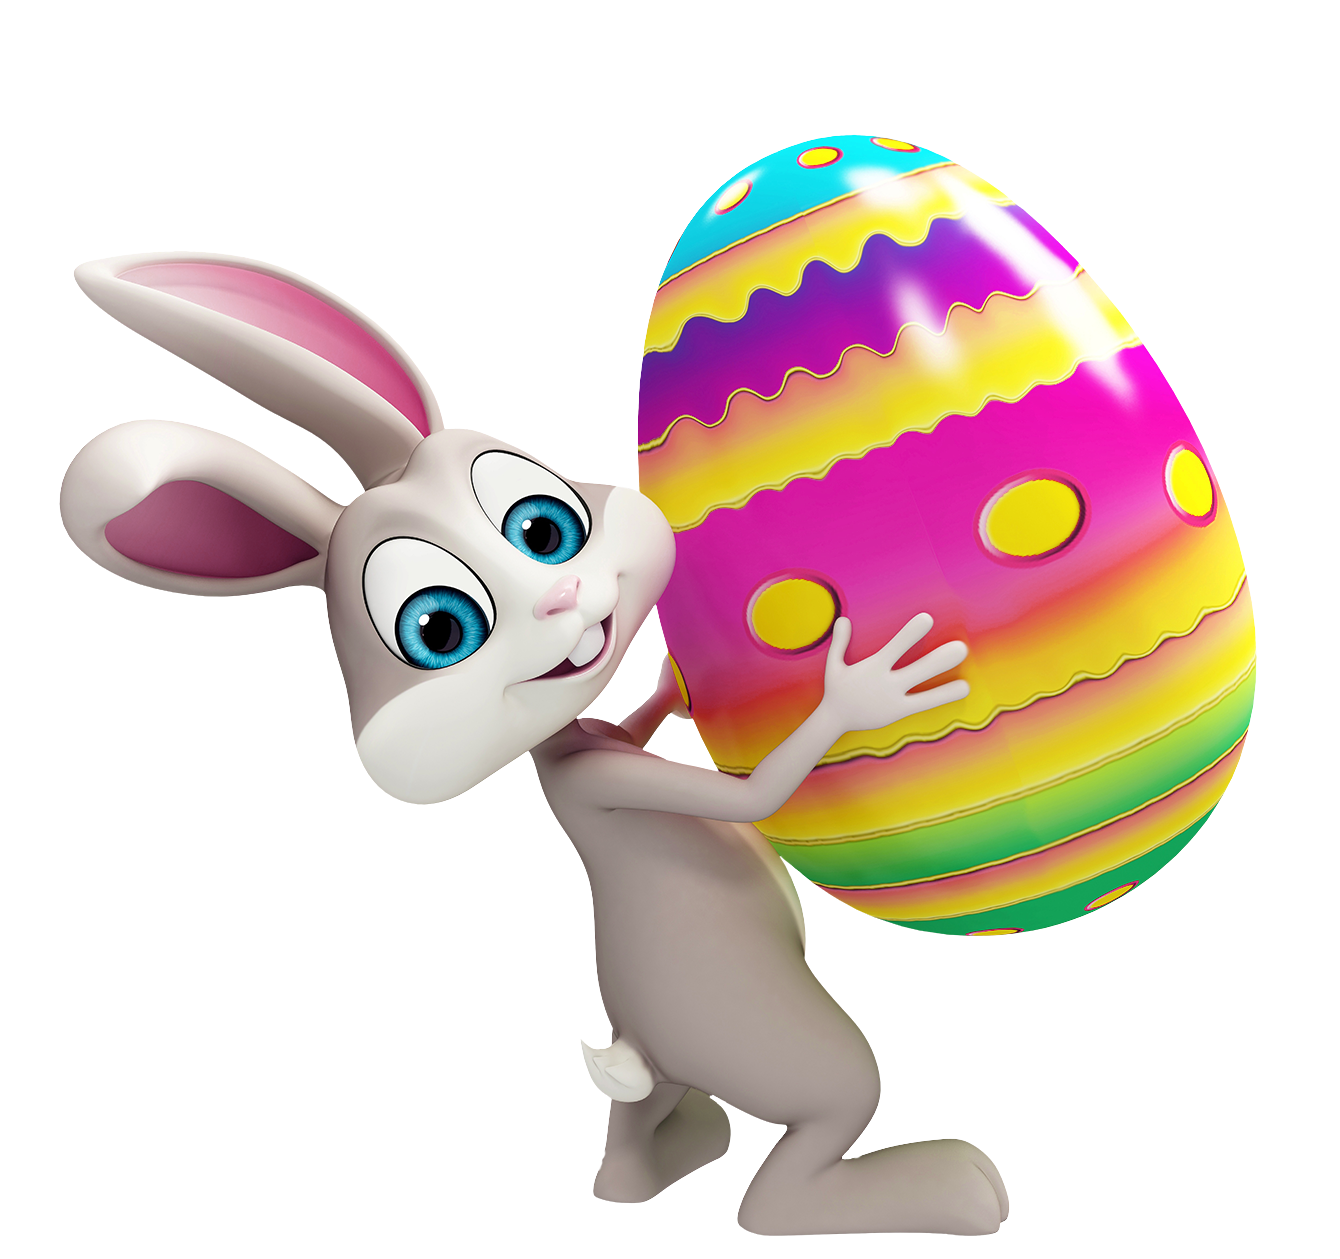 Cool clipart easter. Bunny clip art with